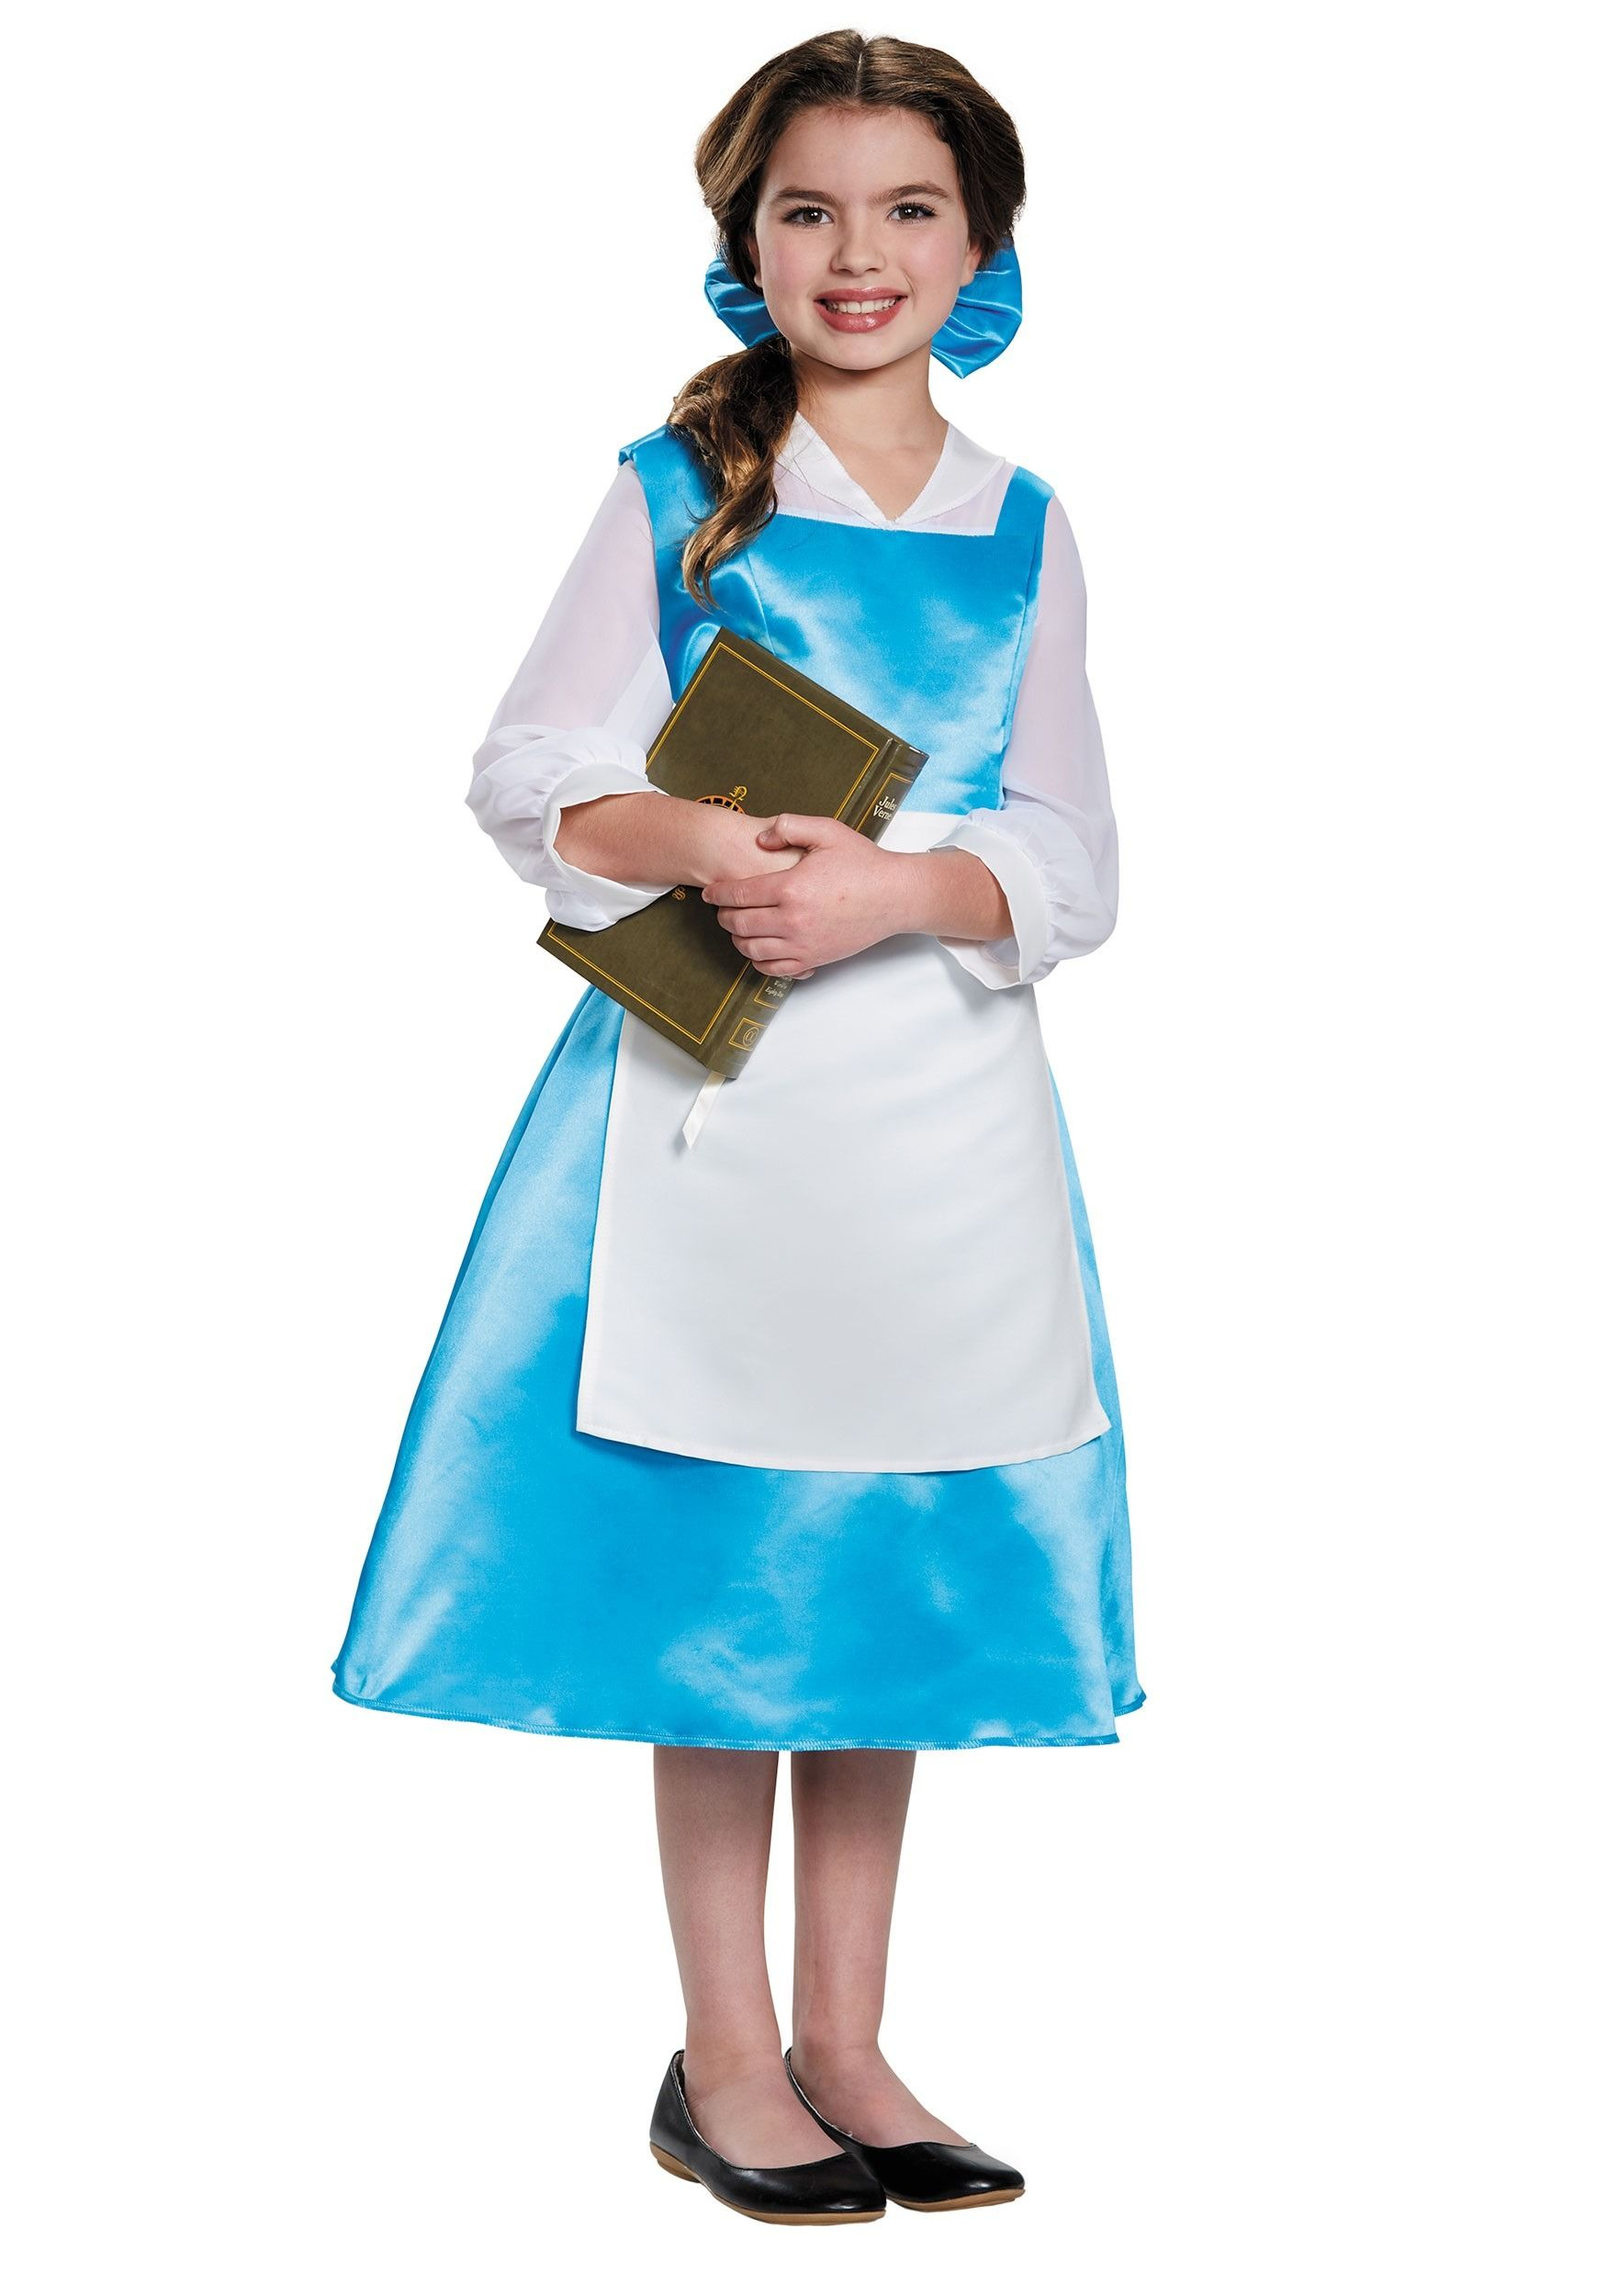 Blue dress belle costume storybook good style dresses pinterest